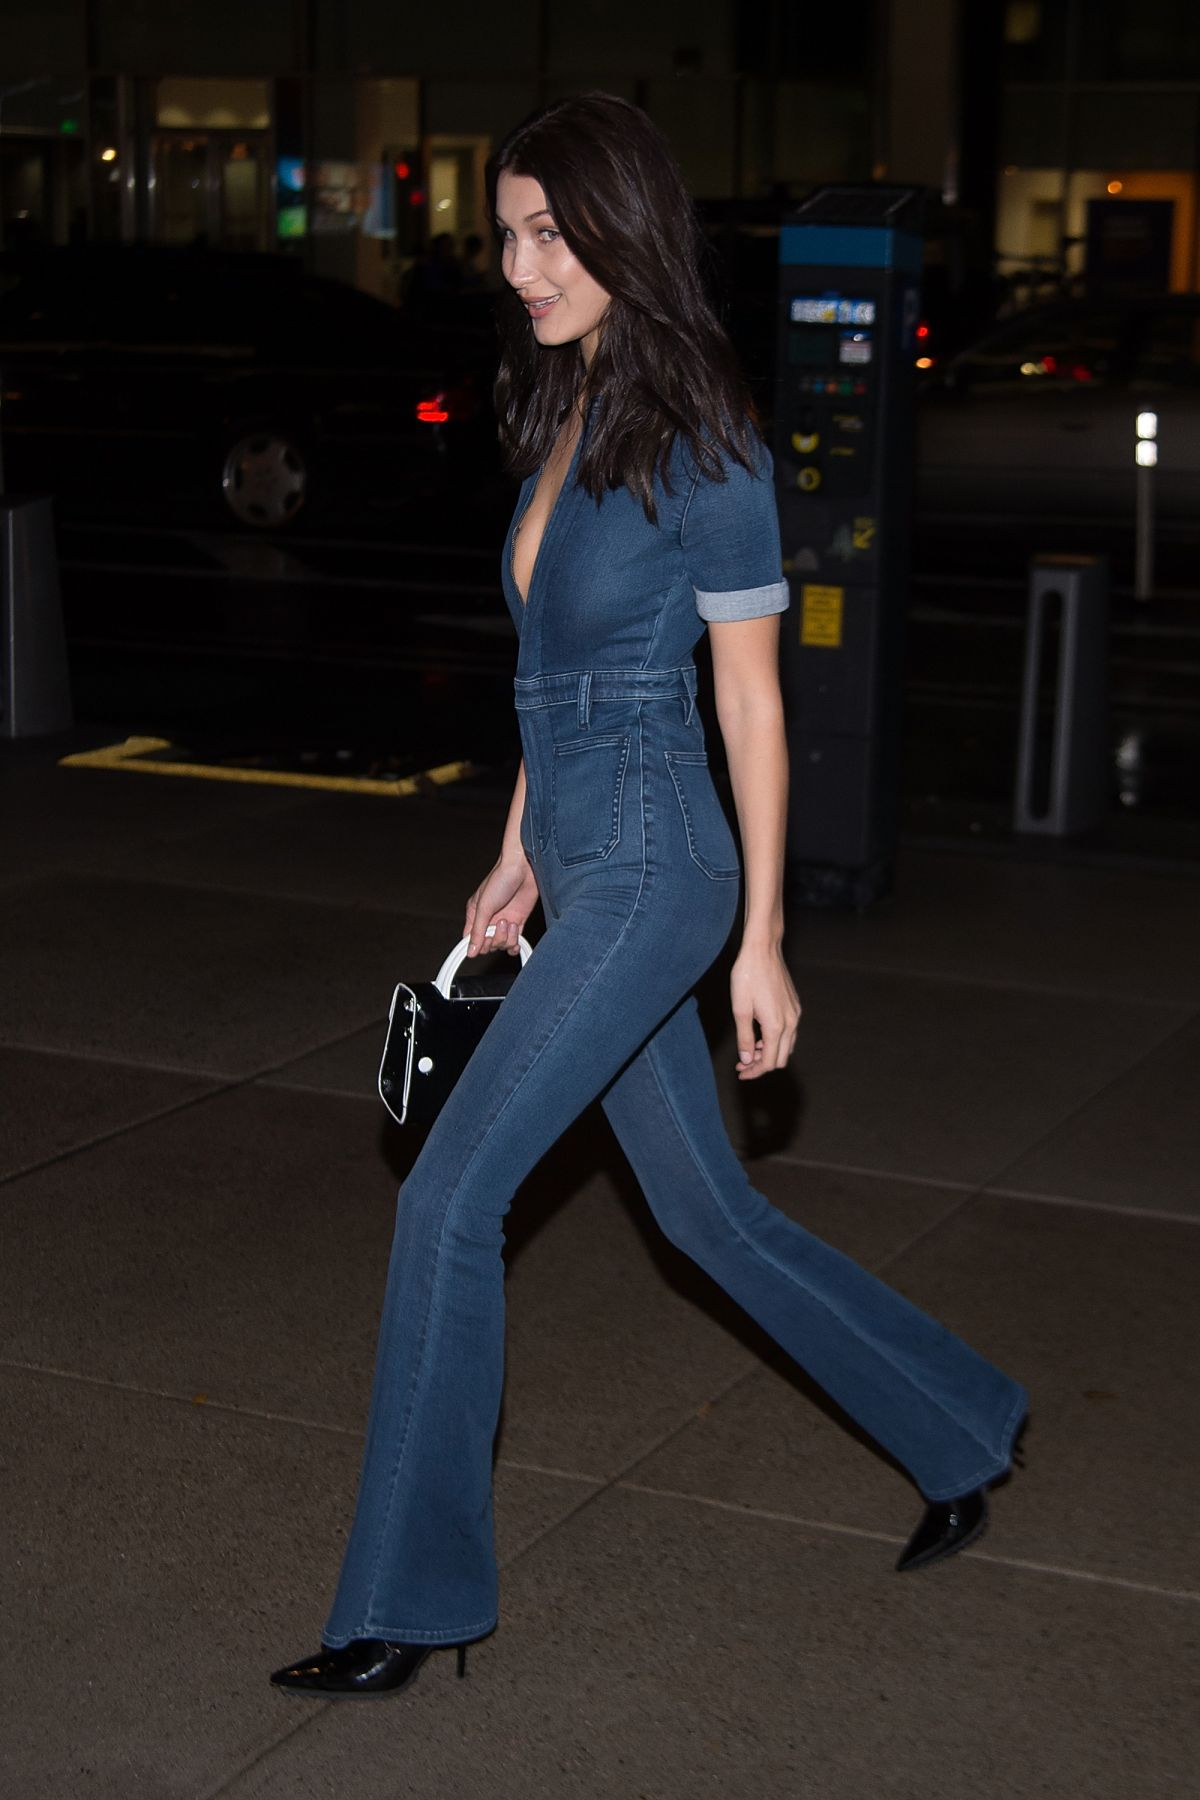 547eb5c86b4 BELLA HADID in Jeans at Victoria s Secret Headquarters in New York 10 30  2016. Posted by Aleksandar. October 31